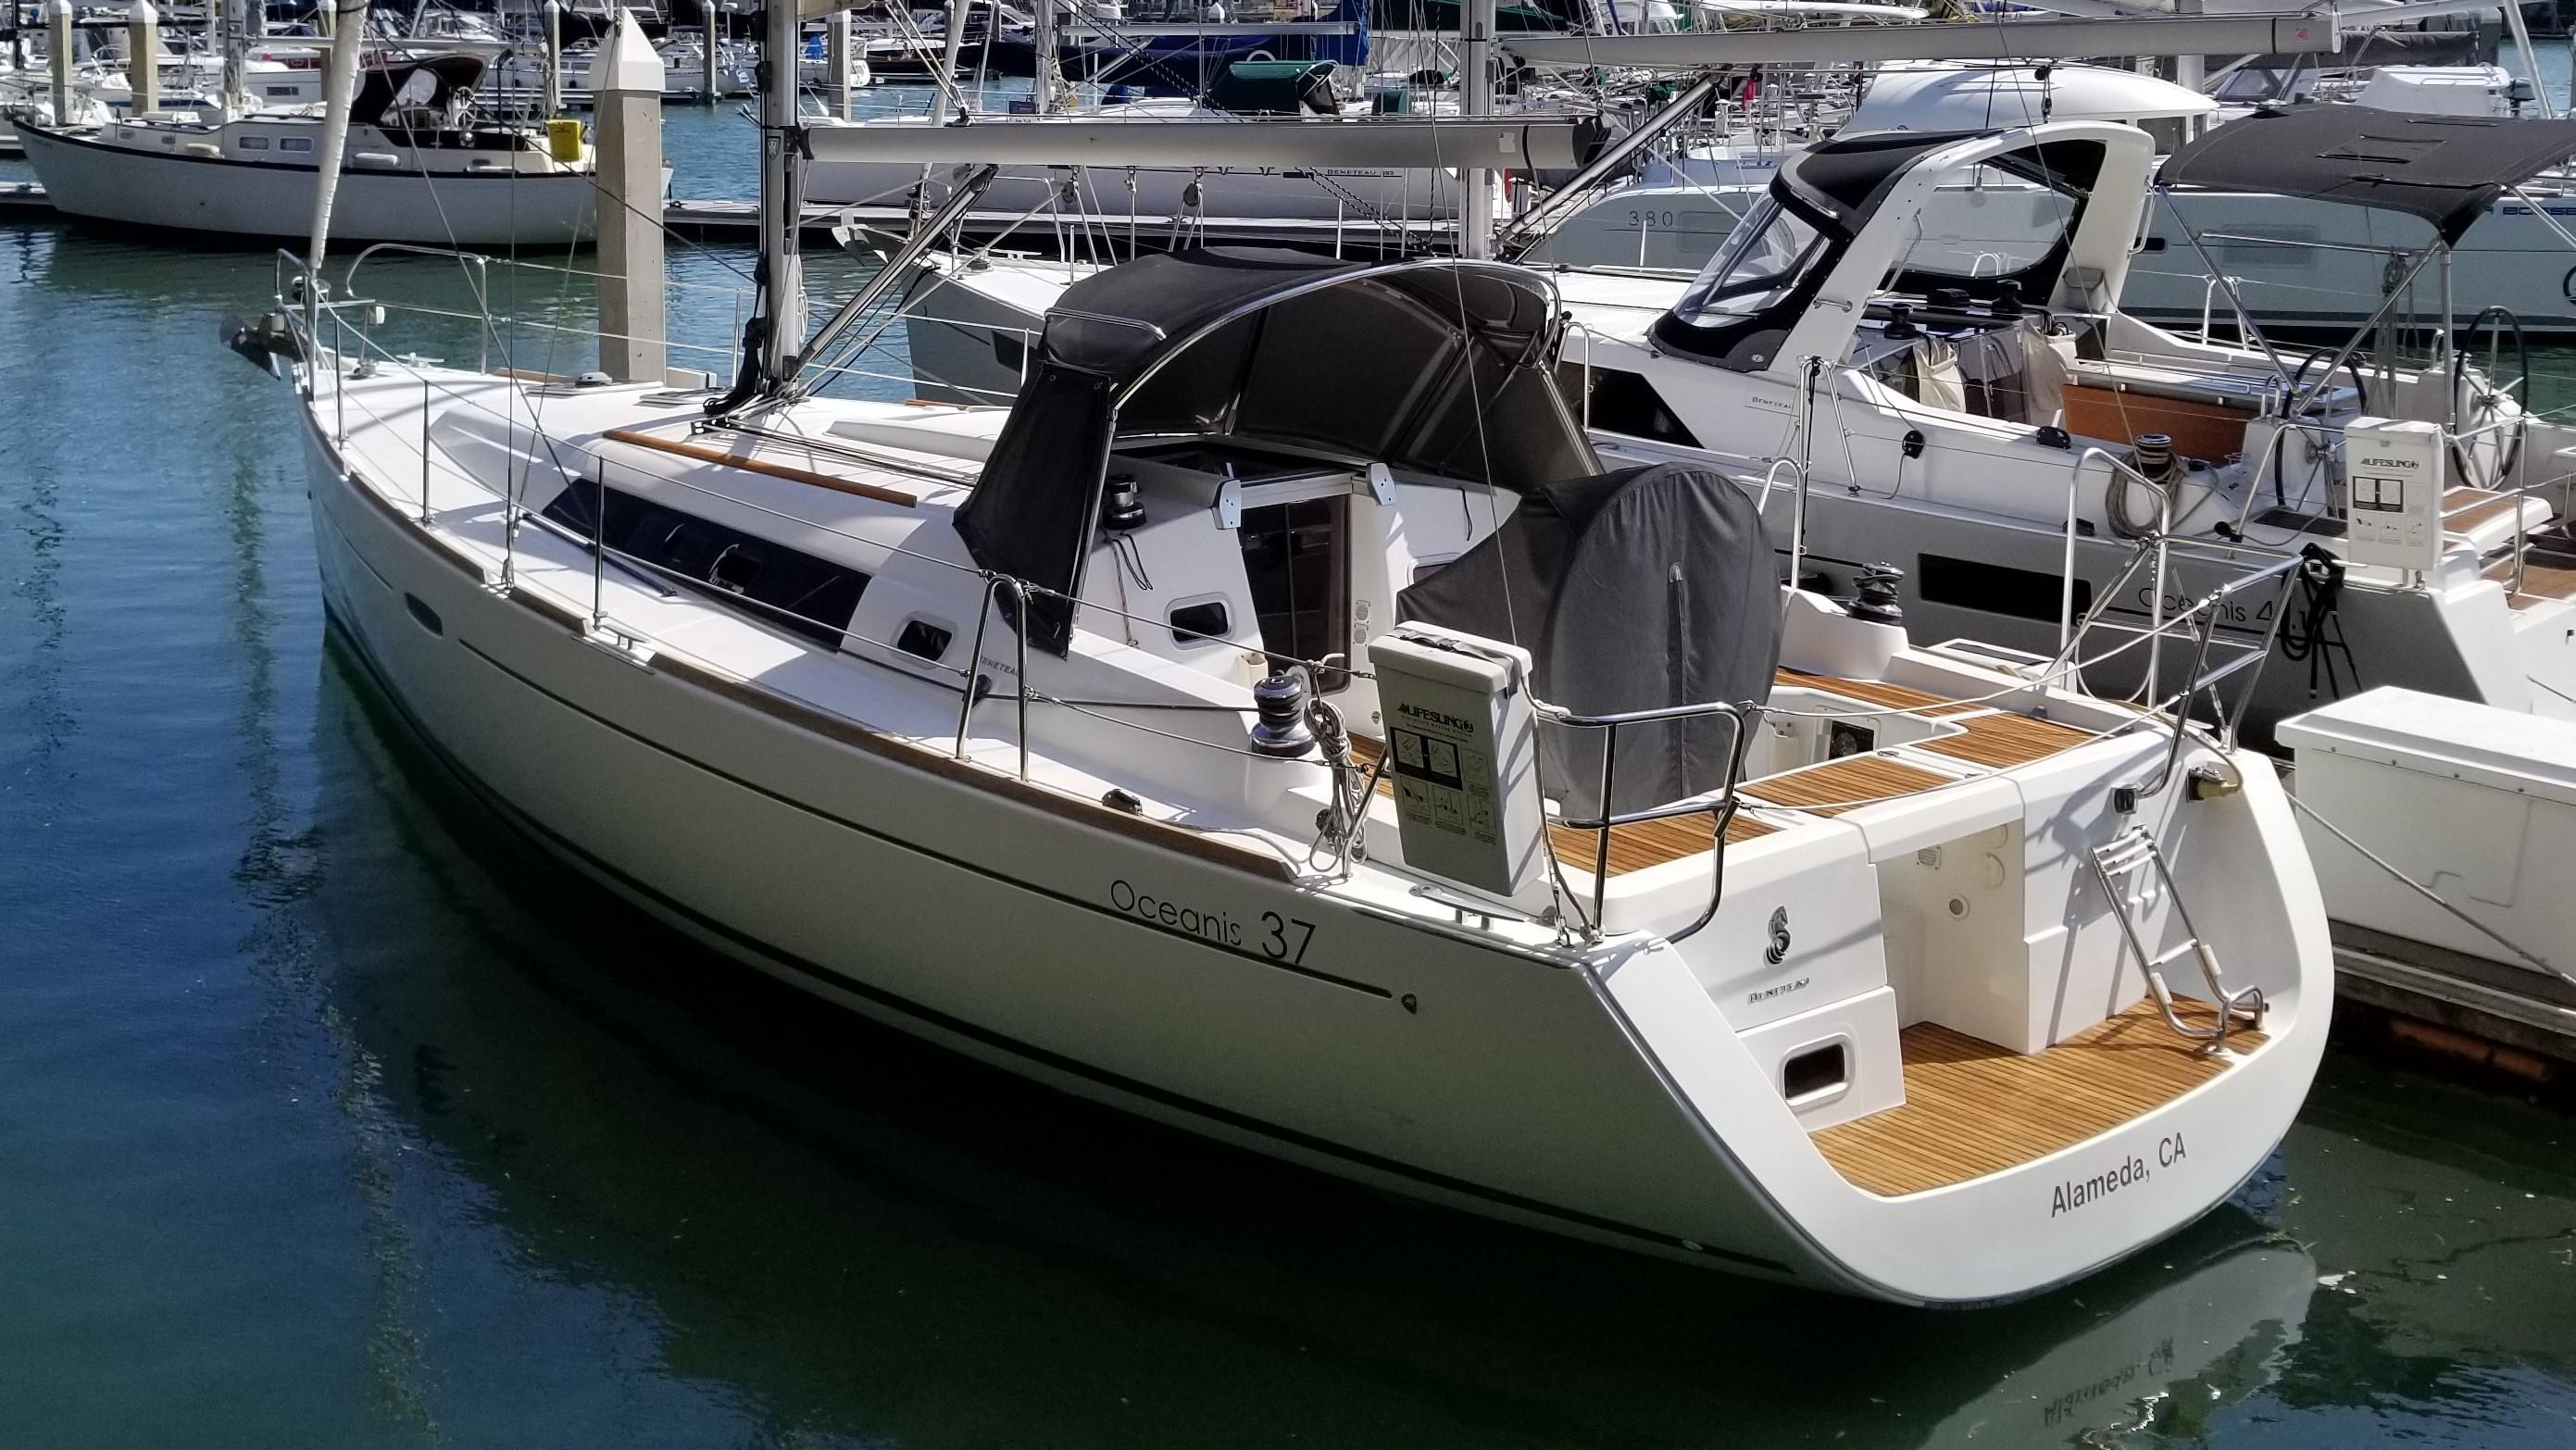 How To Buy A Used Boat Passage Nautical